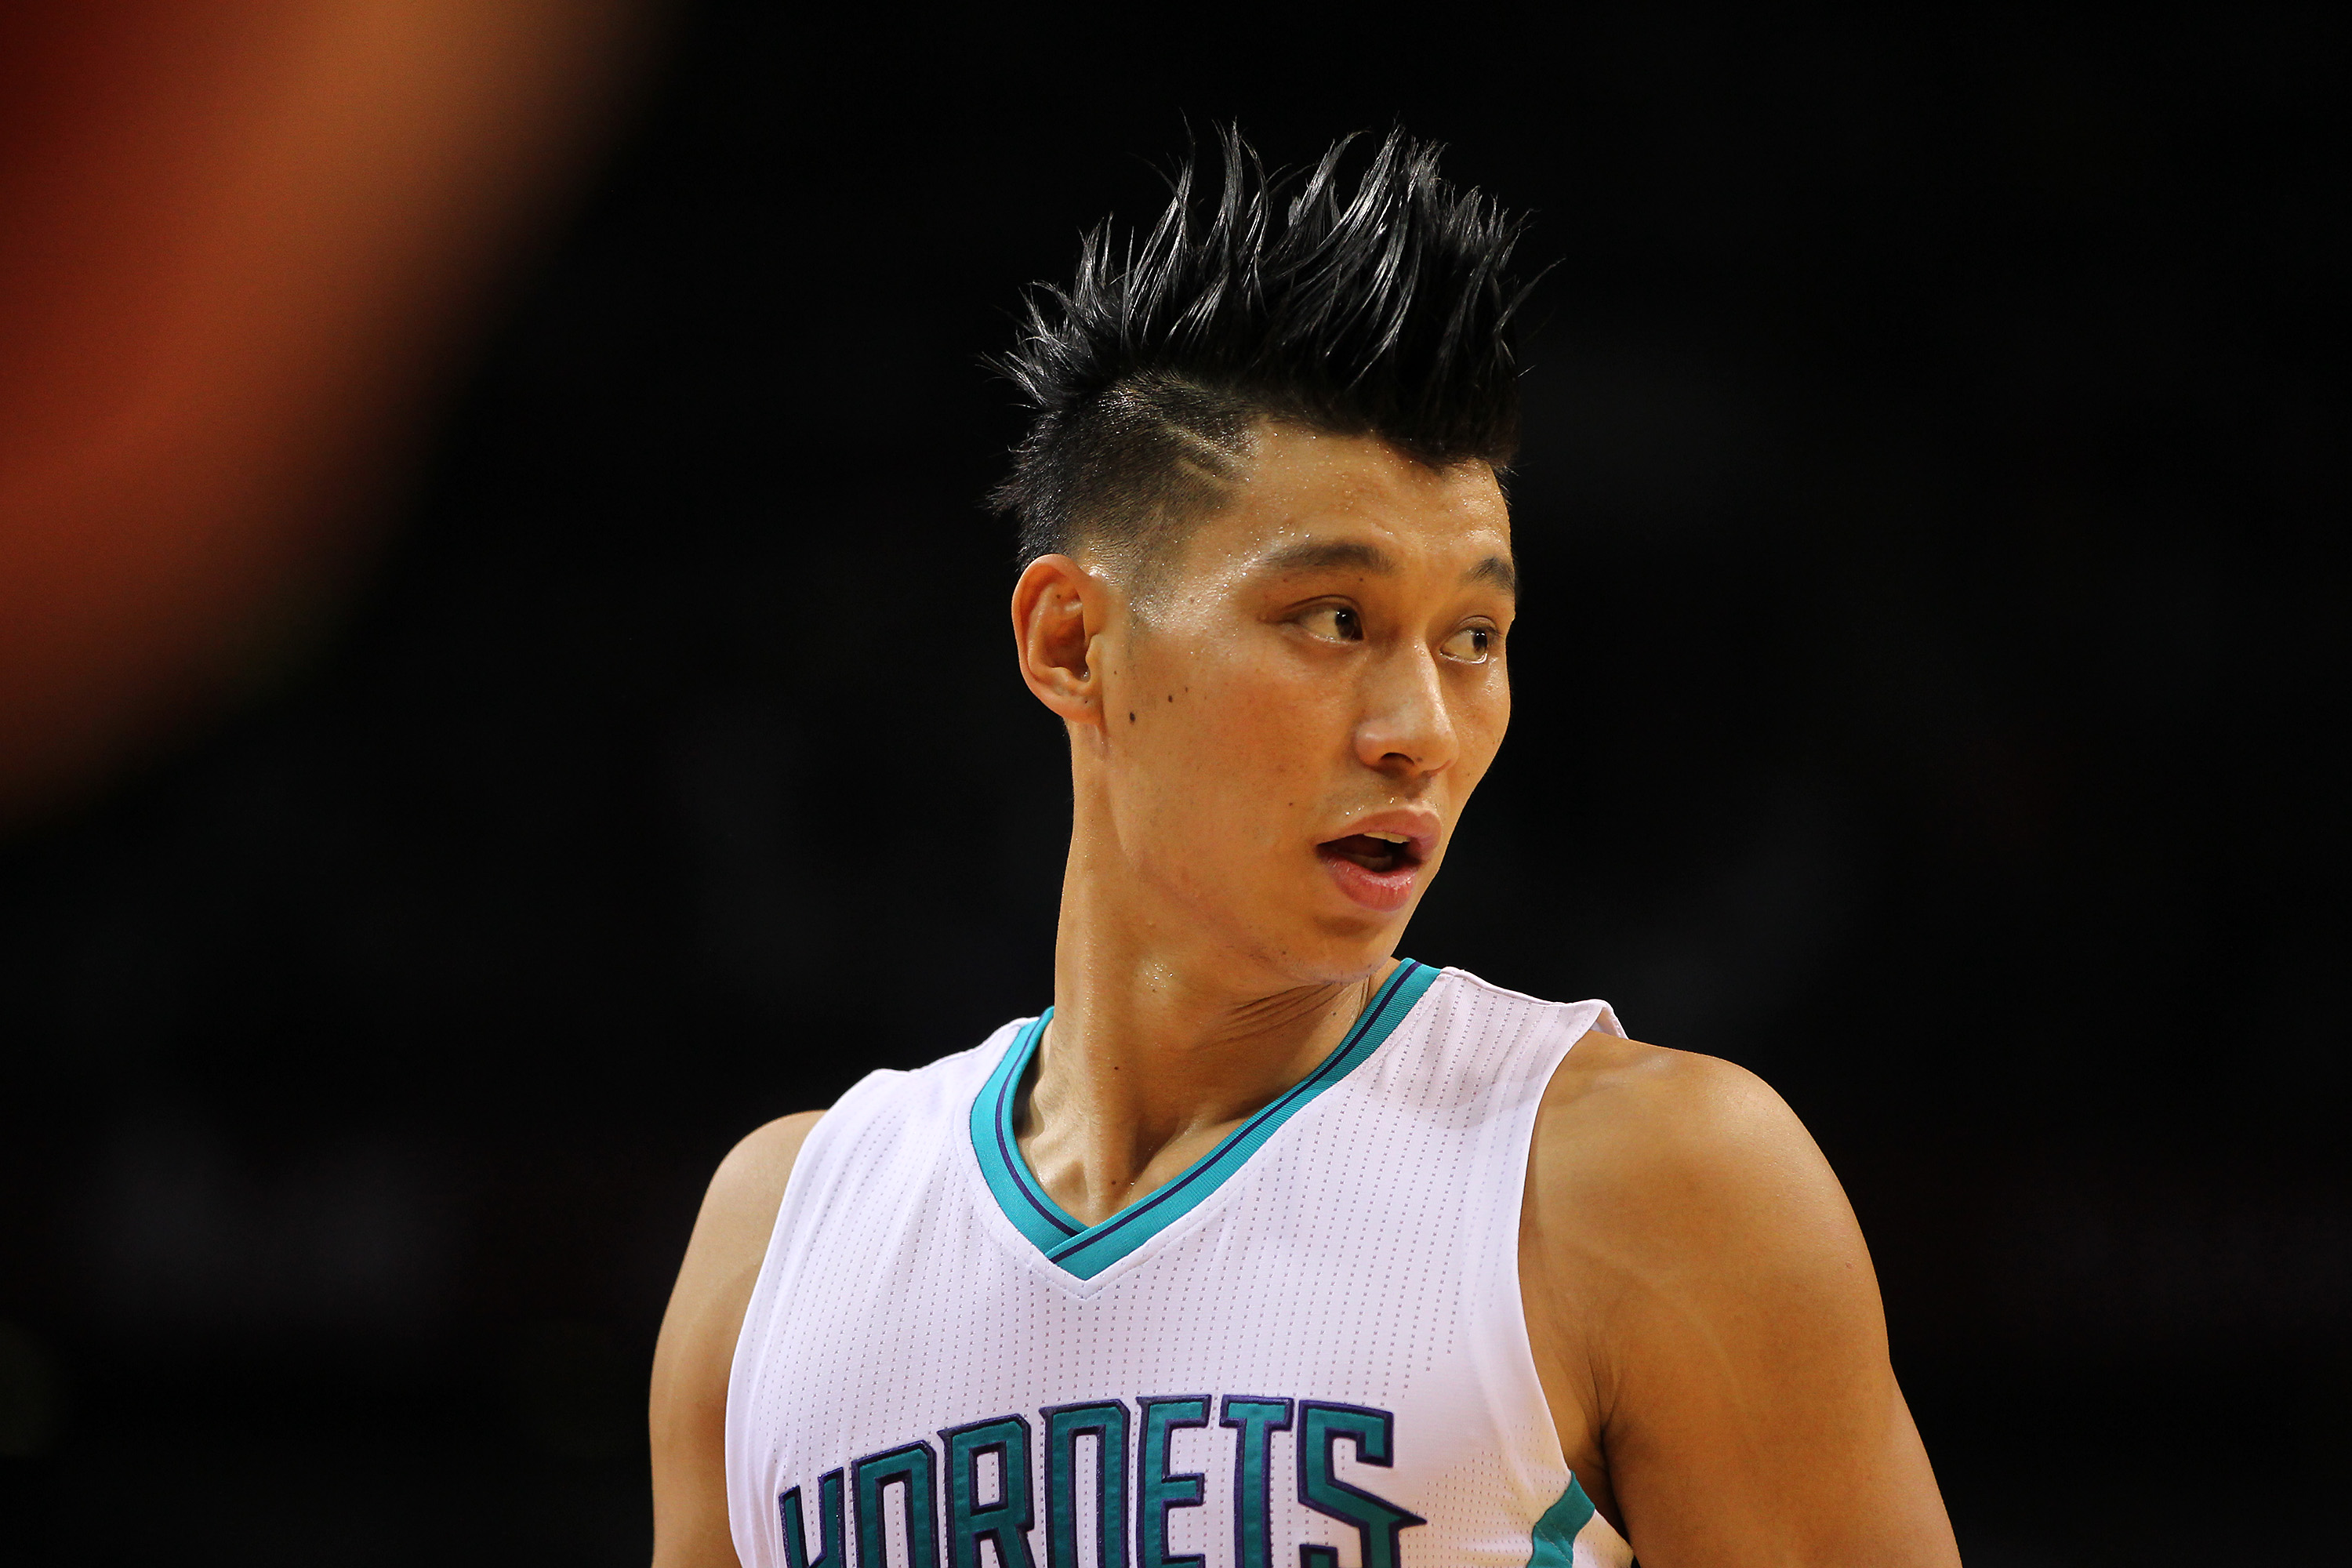 Jeremy Lin: Jeremy Lin's Mother Took Out Money From 401K For A Chance